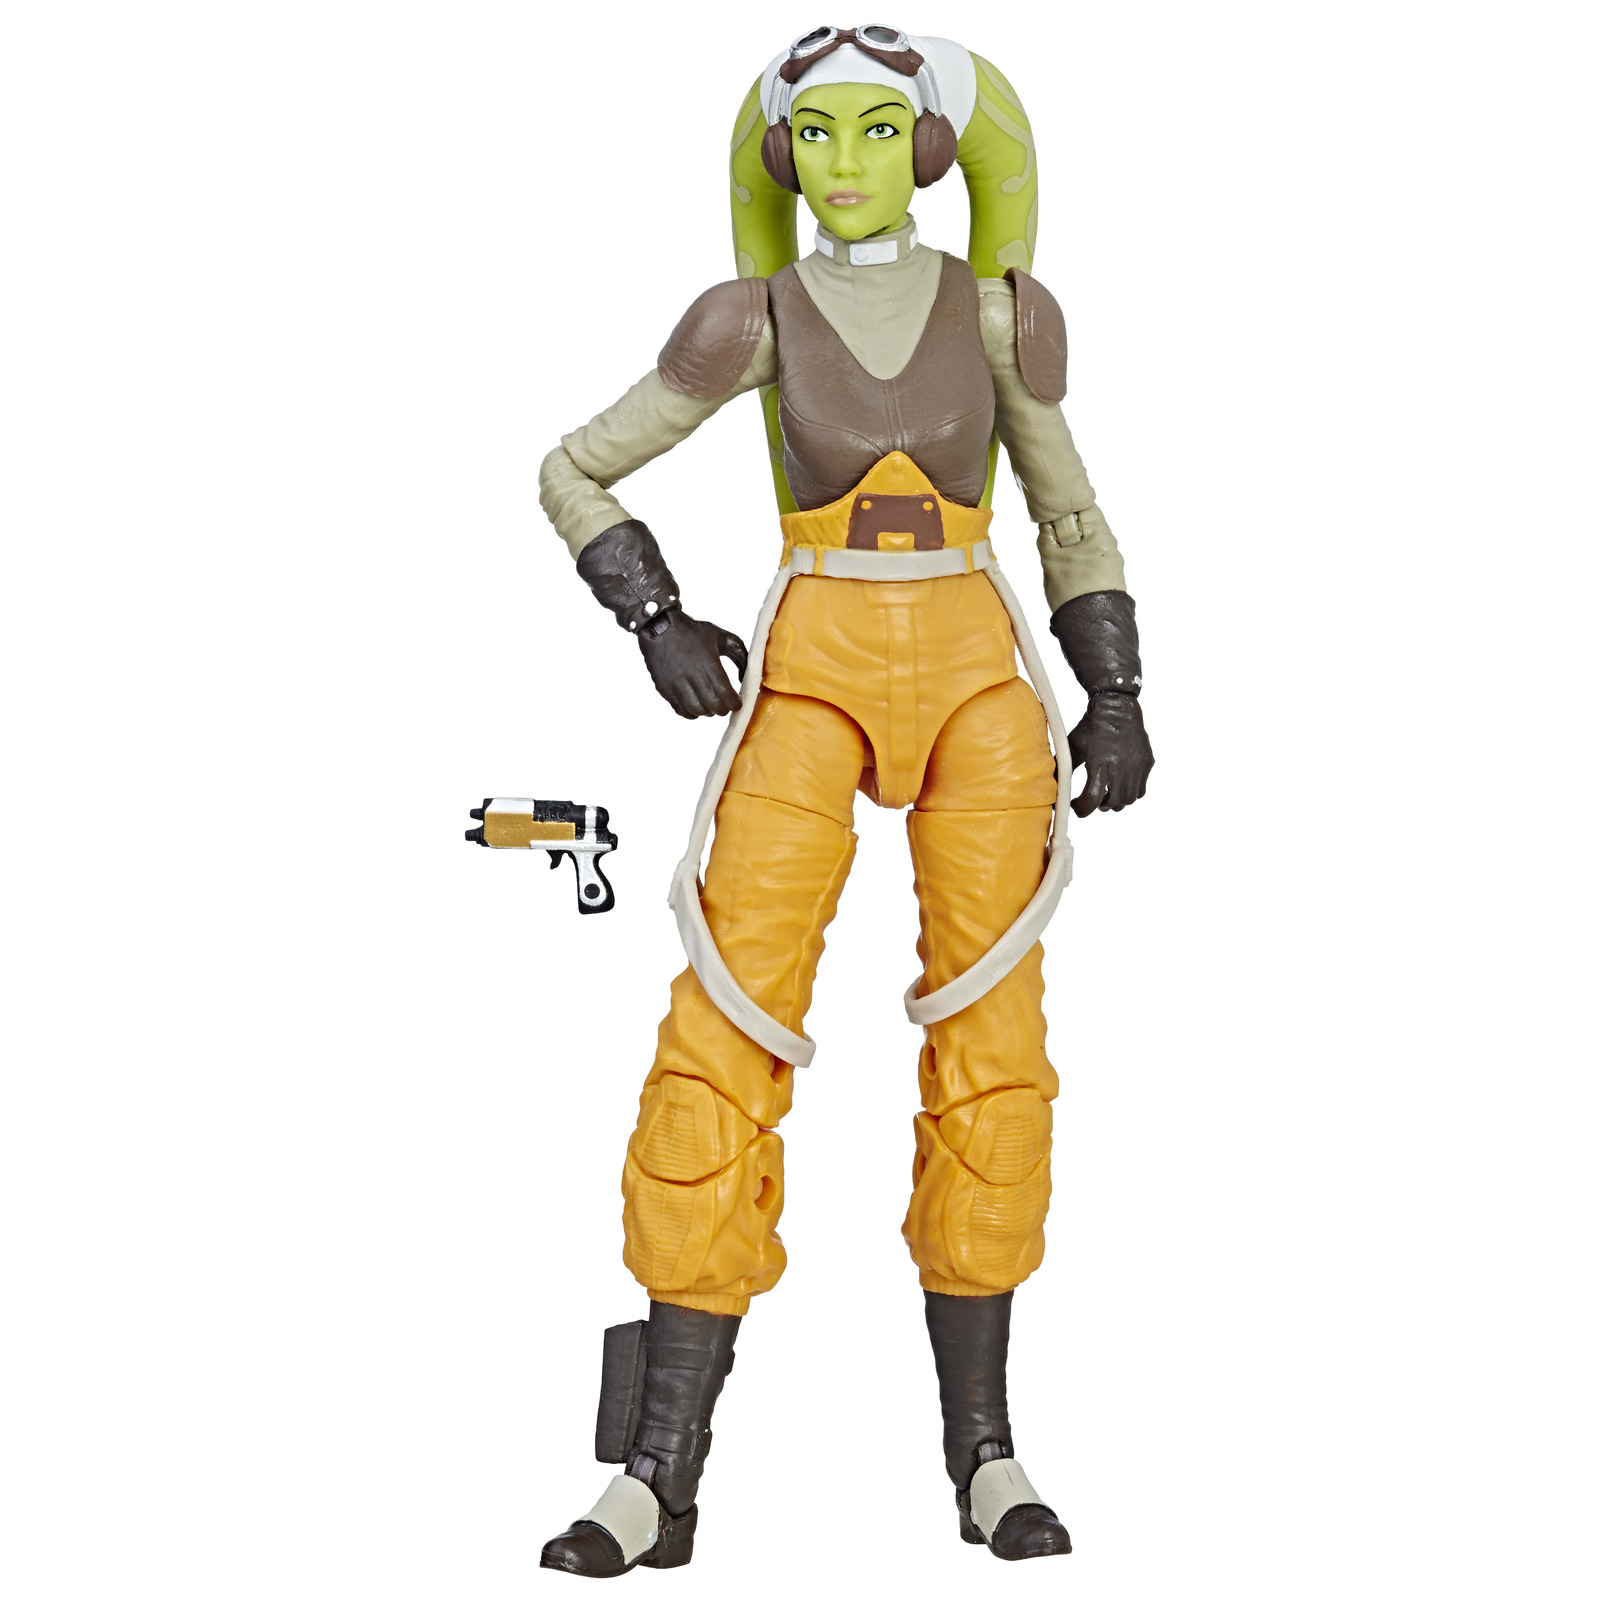 Star Wars: The Black Series - Hera Syndulla image